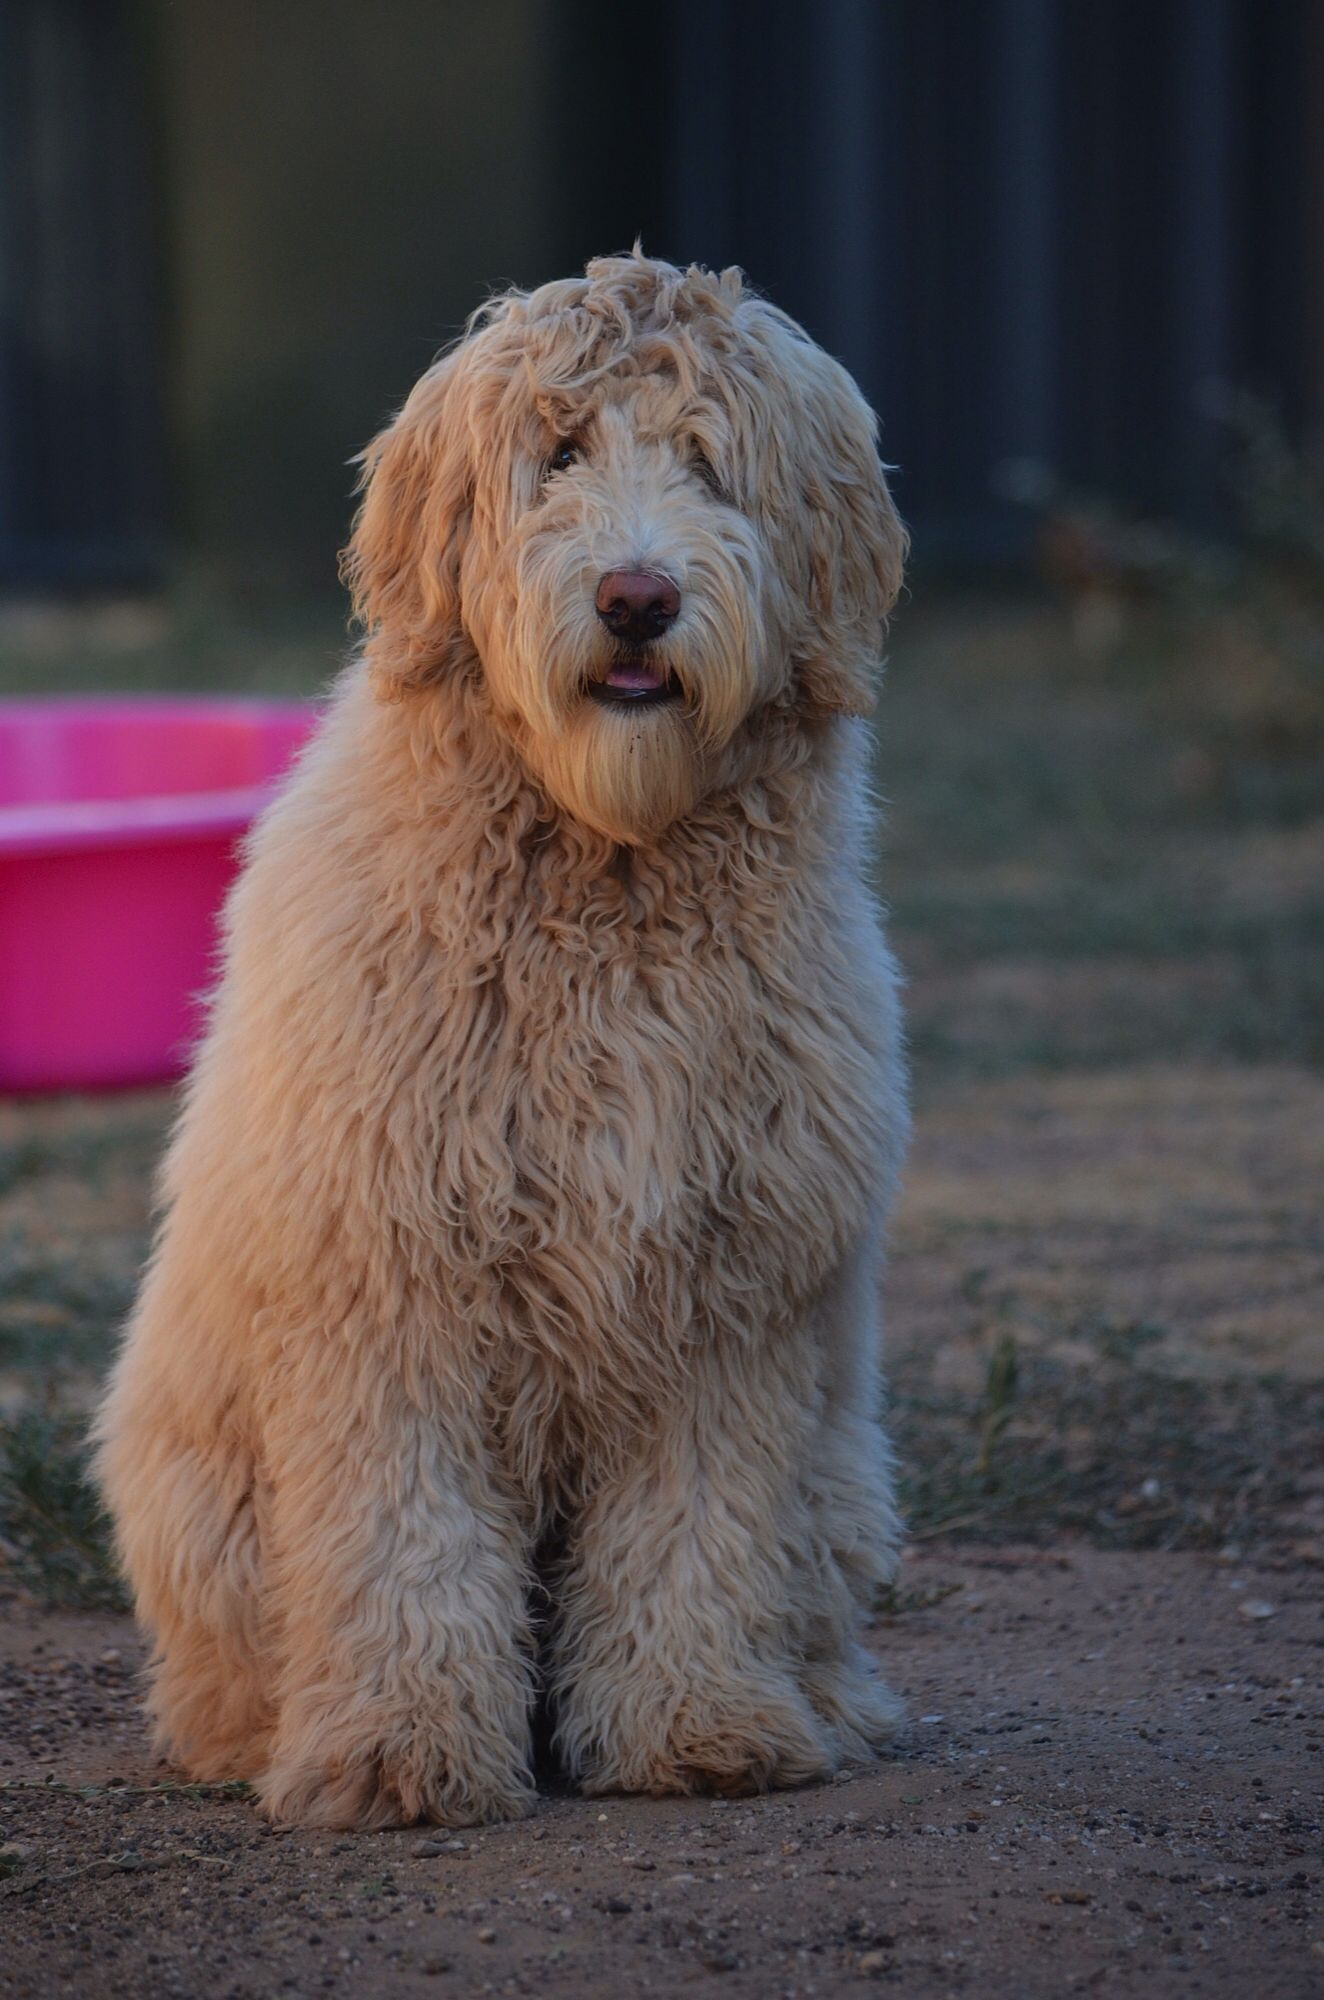 Australian labradoodle puppy bossy the labradoodle pinterest australian labradoodle puppy bossy the labradoodle pinterest labradoodle australian labradoodle and australian labradoodle puppies nvjuhfo Images